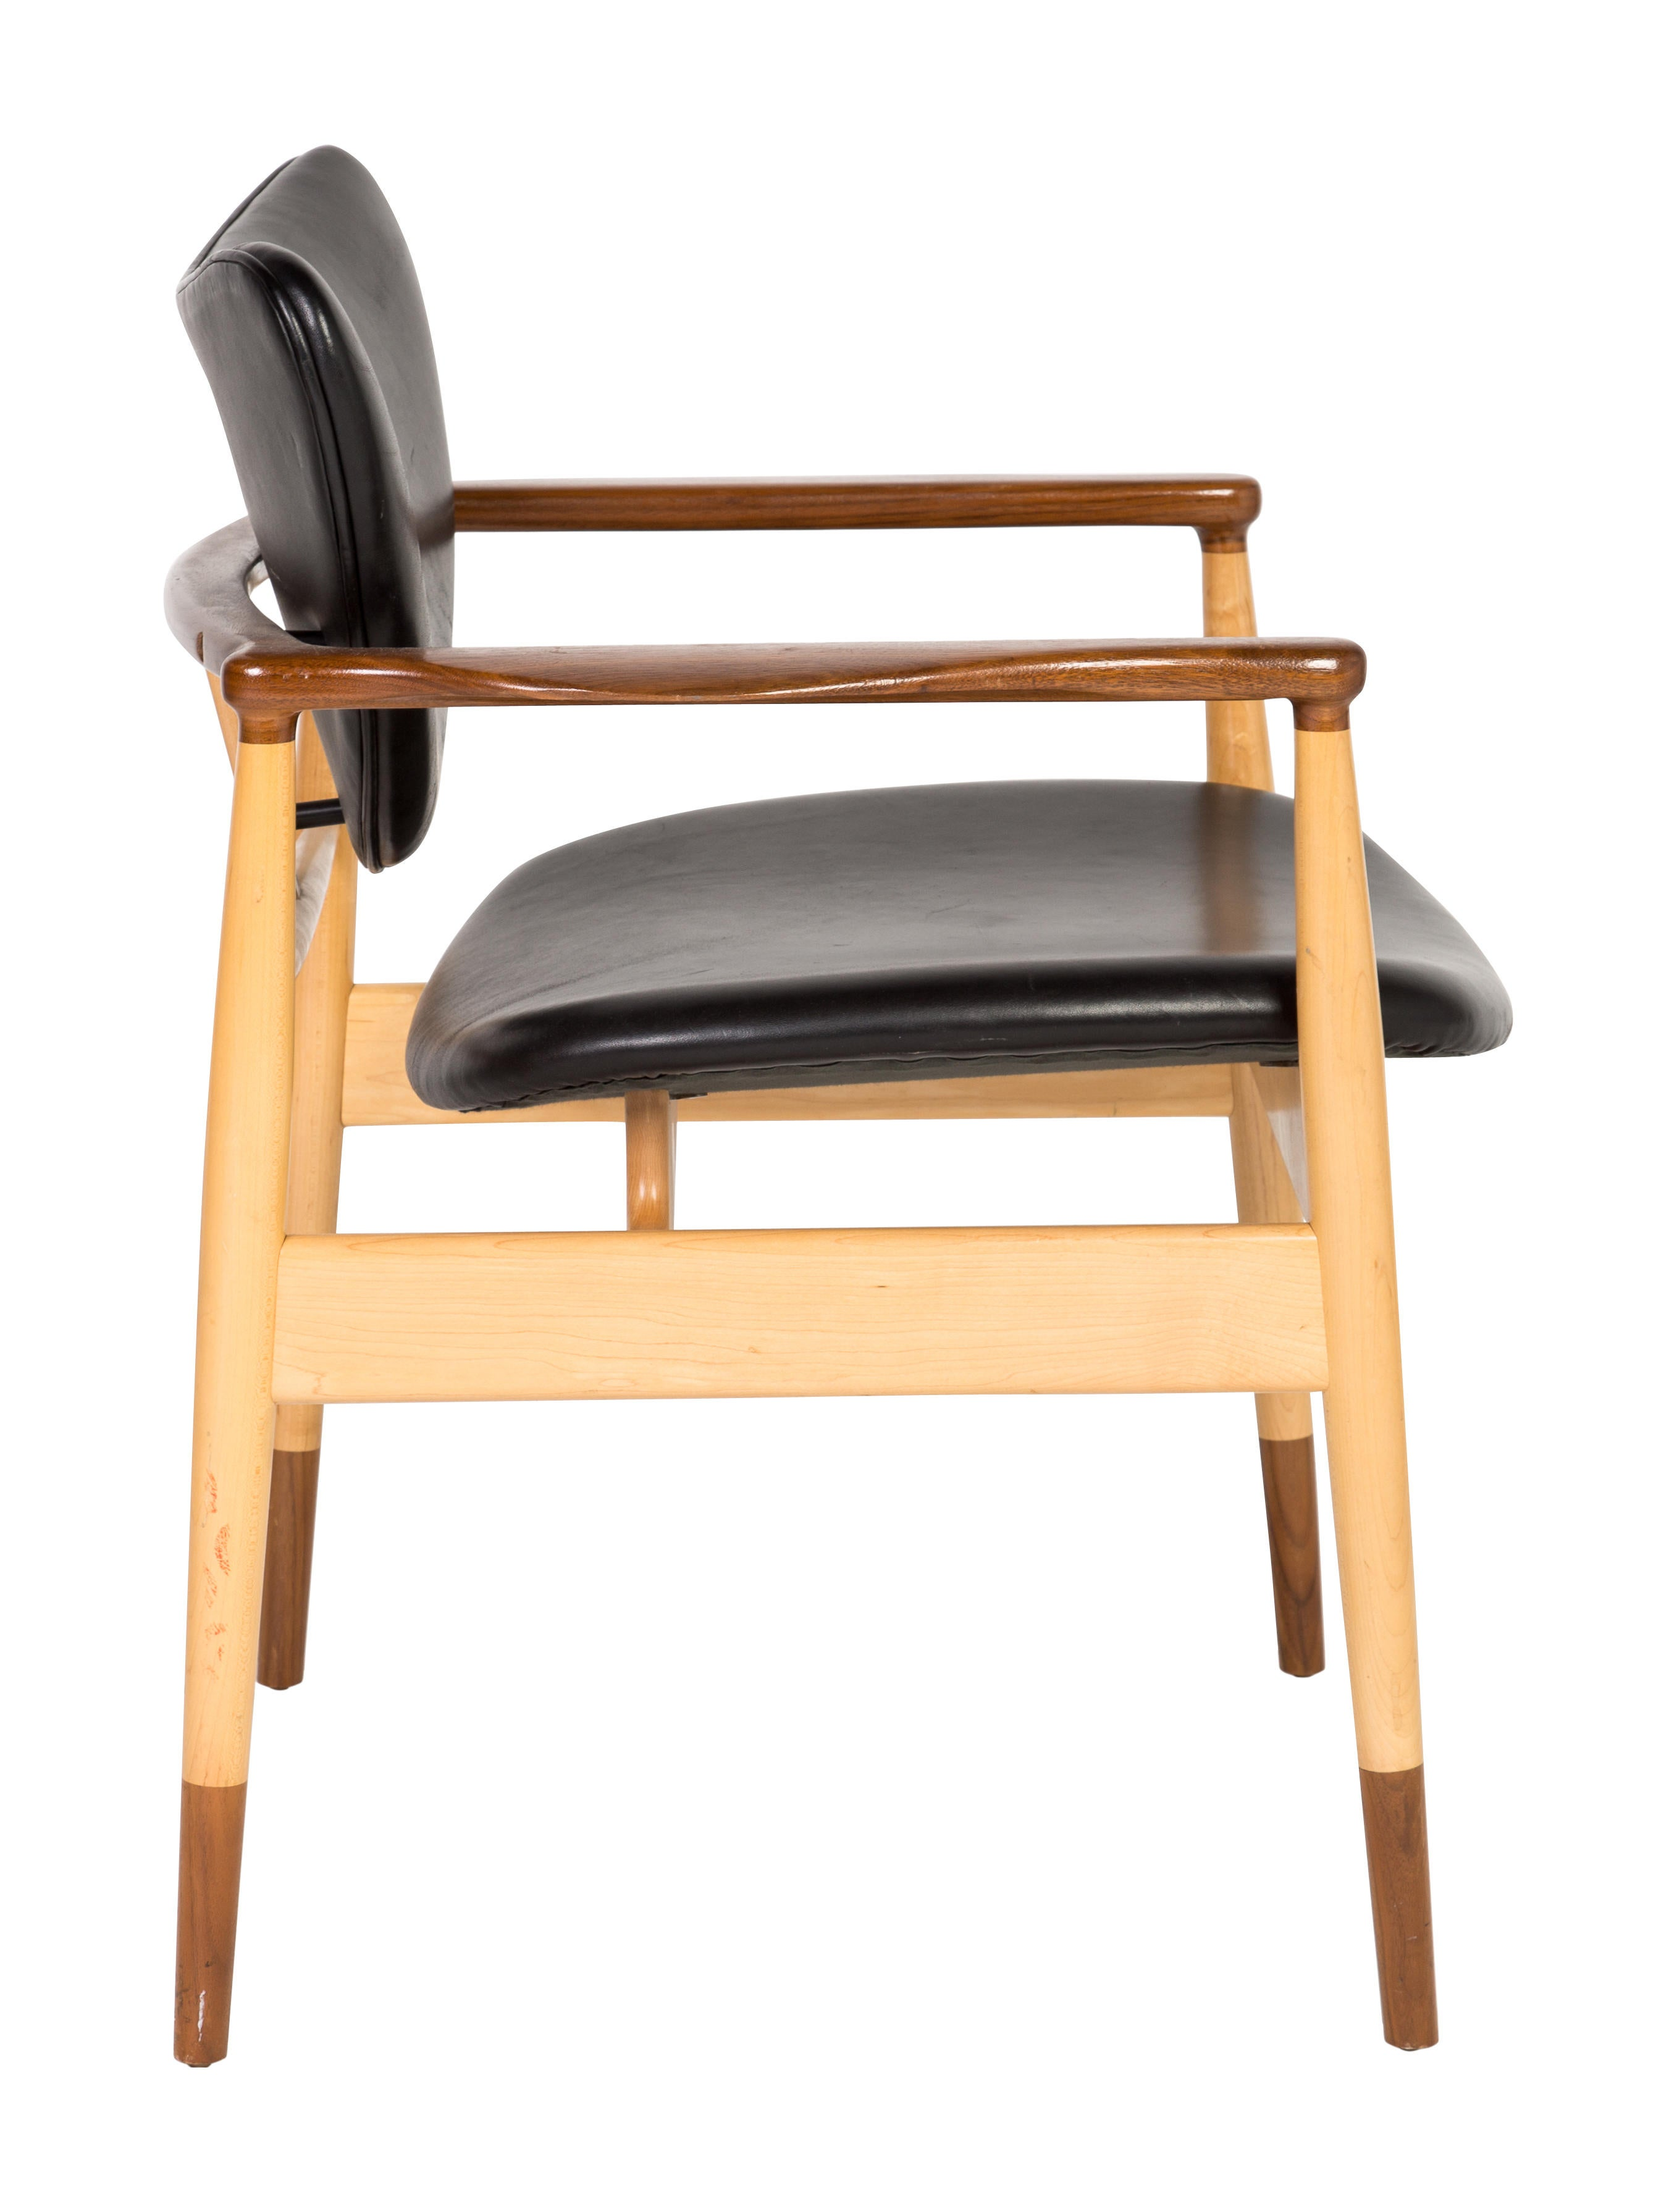 Baker leather lj 48 accent chairs furniture baker20031 the realreal - Essential accent furniture for your home ...